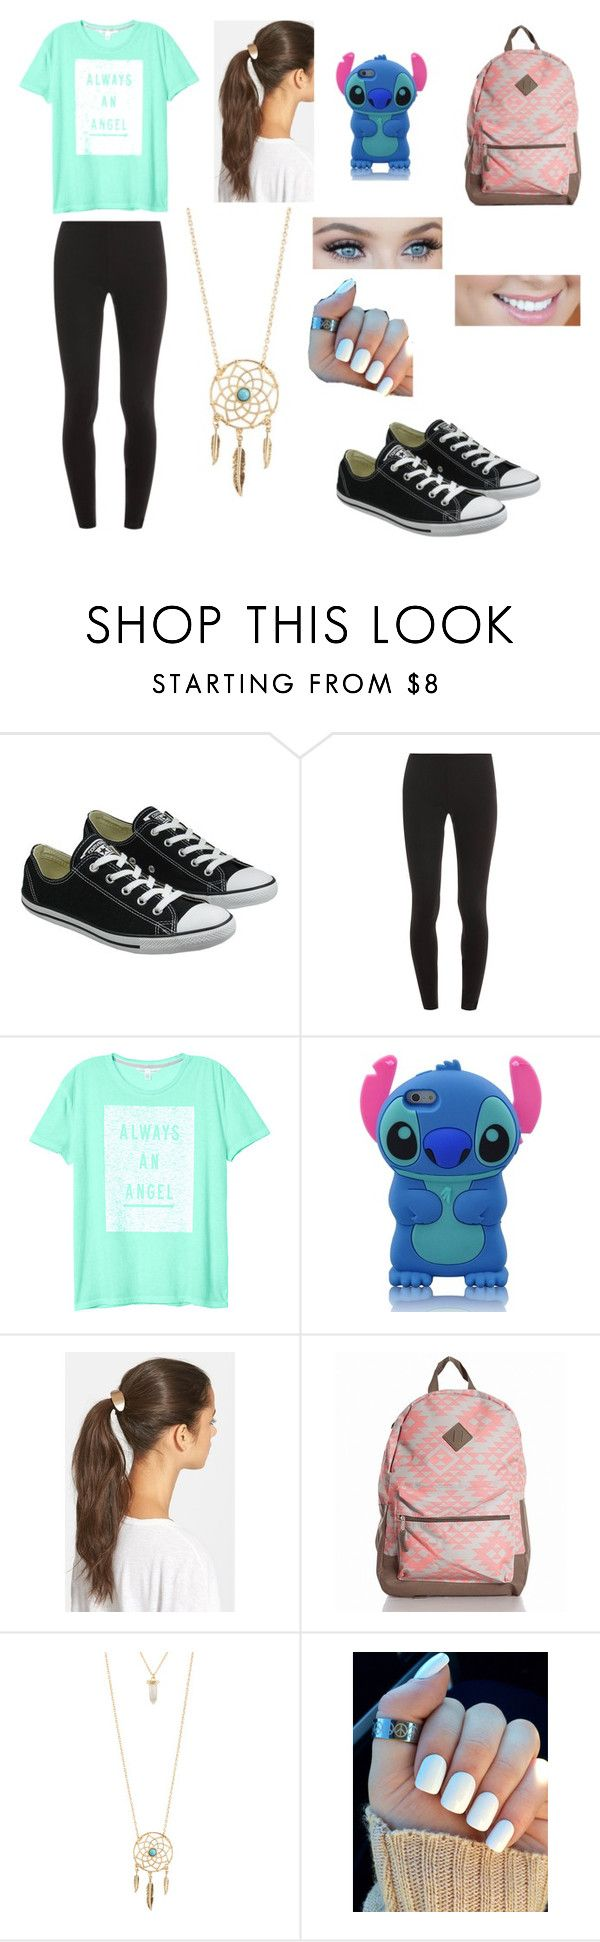 """Back To School Outfit For Teens!"" by pinktropicalparadise ❤ liked on Polyvore featuring Converse, Splendid, Victoria's Secret, Tasha and Aéropostale"